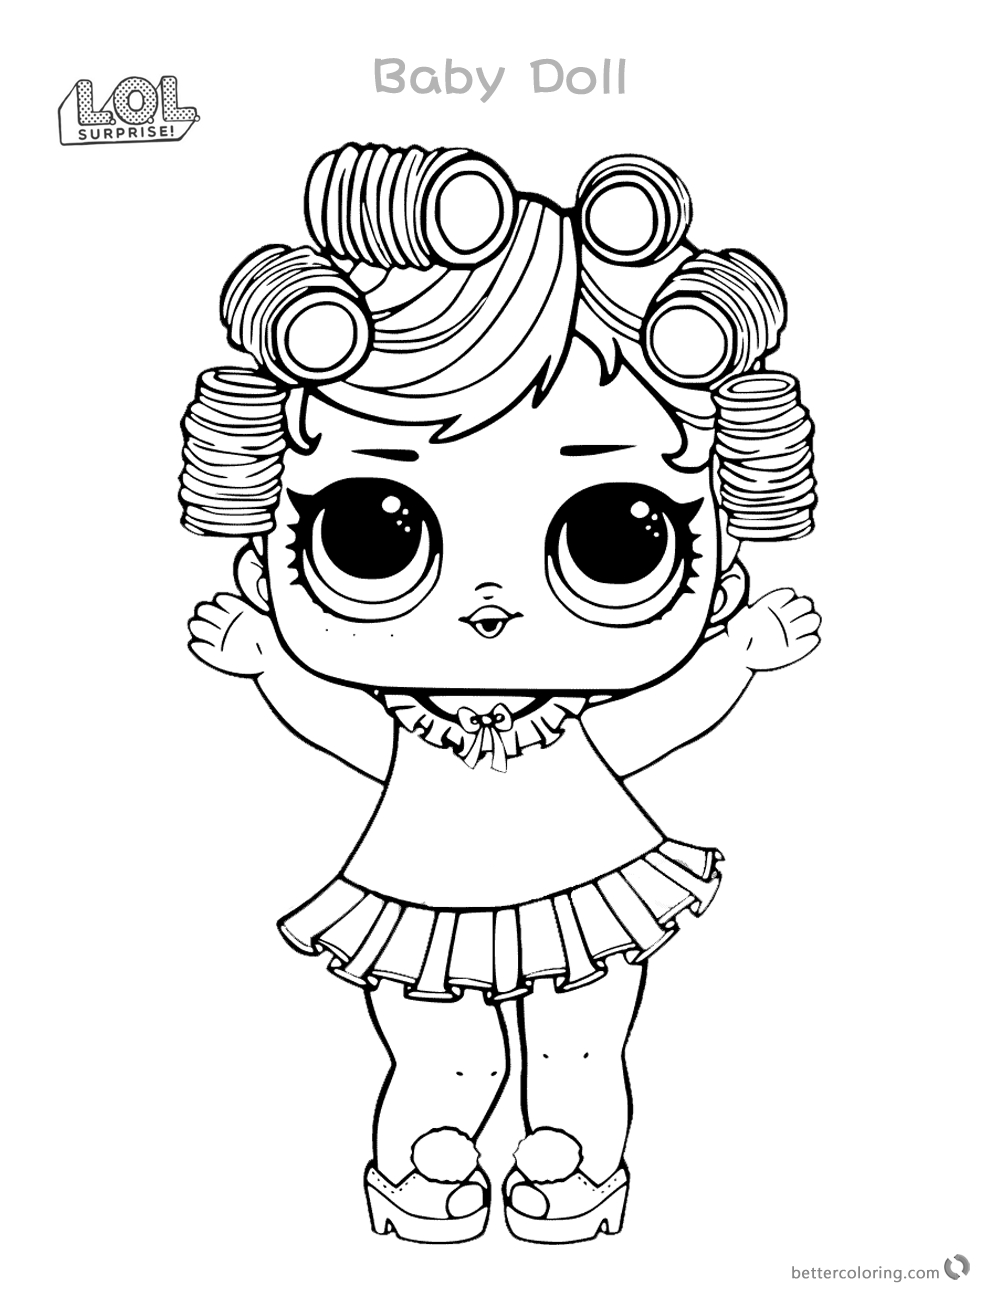 Lol Surprise Doll Coloring Pages At Getdrawings Com Free